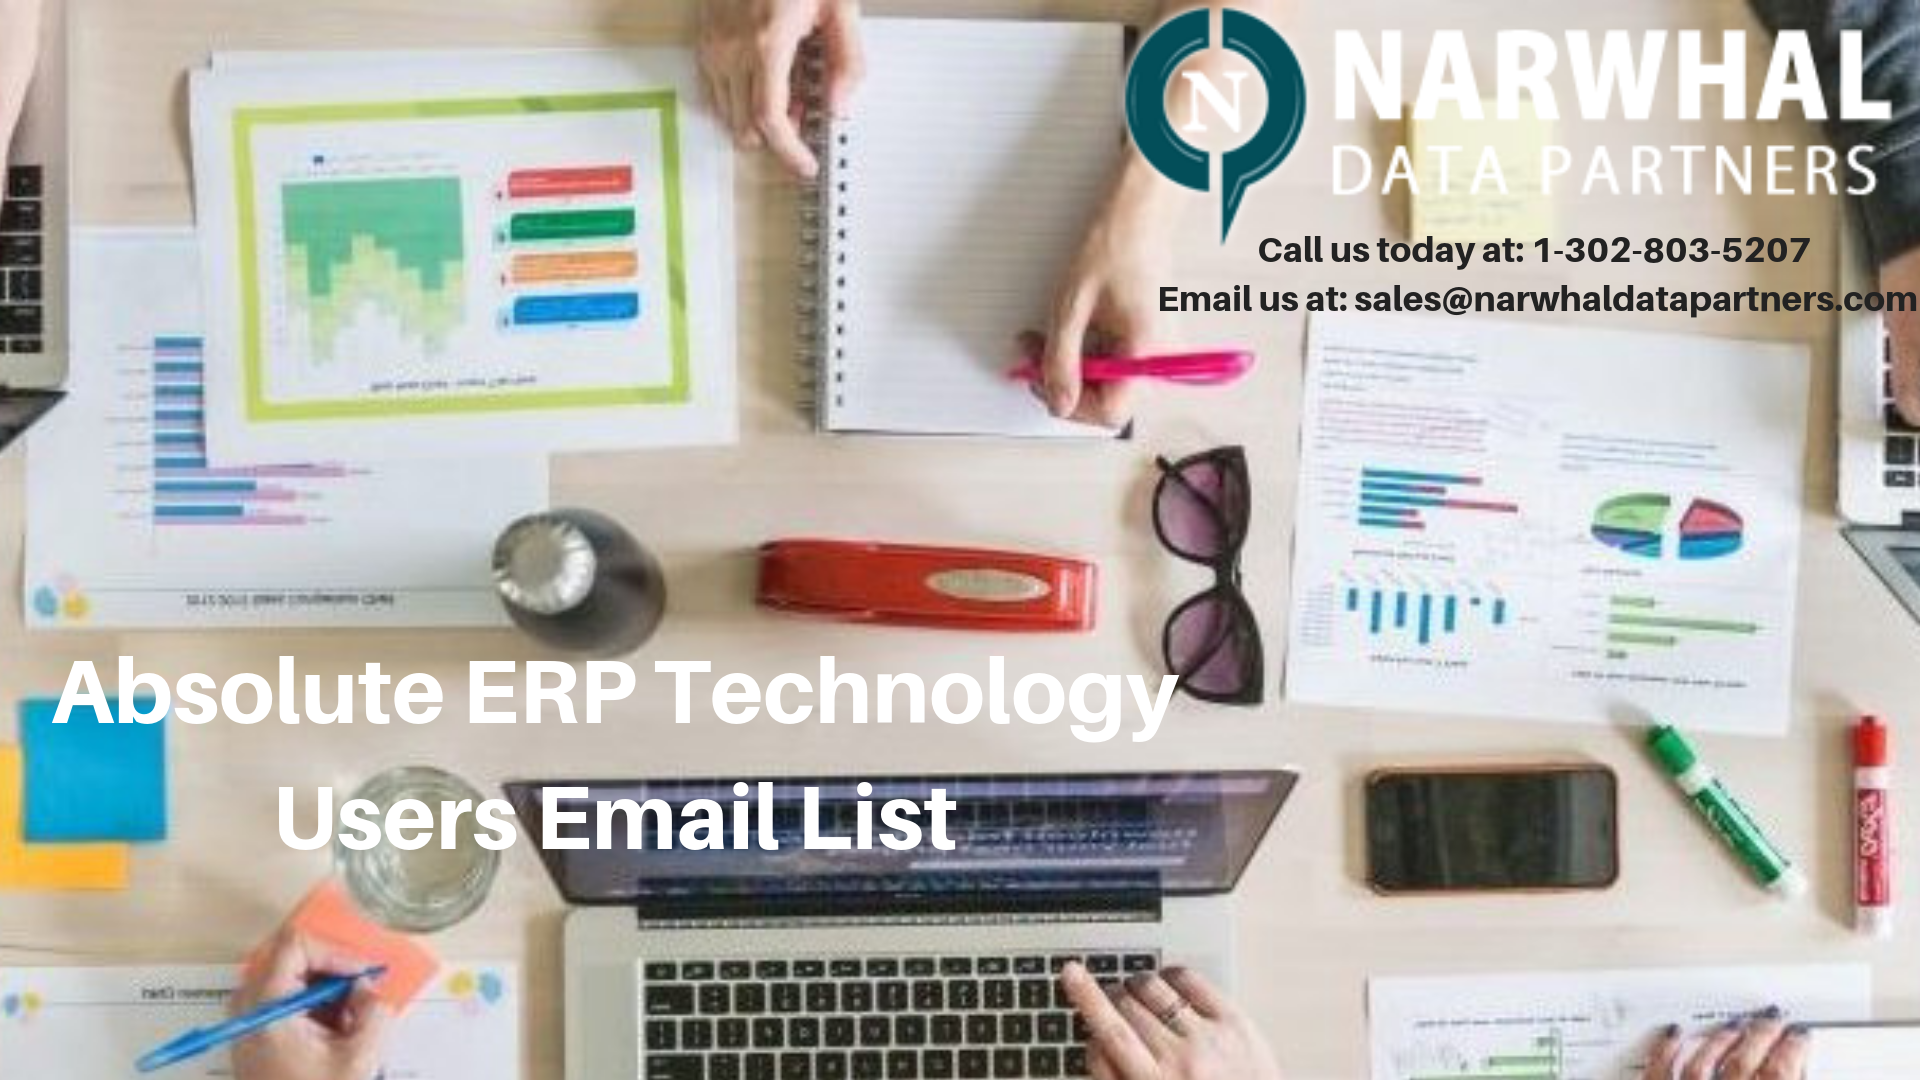 http://narwhaldatapartners.com/absolute-erp-technology-users-email-list.html